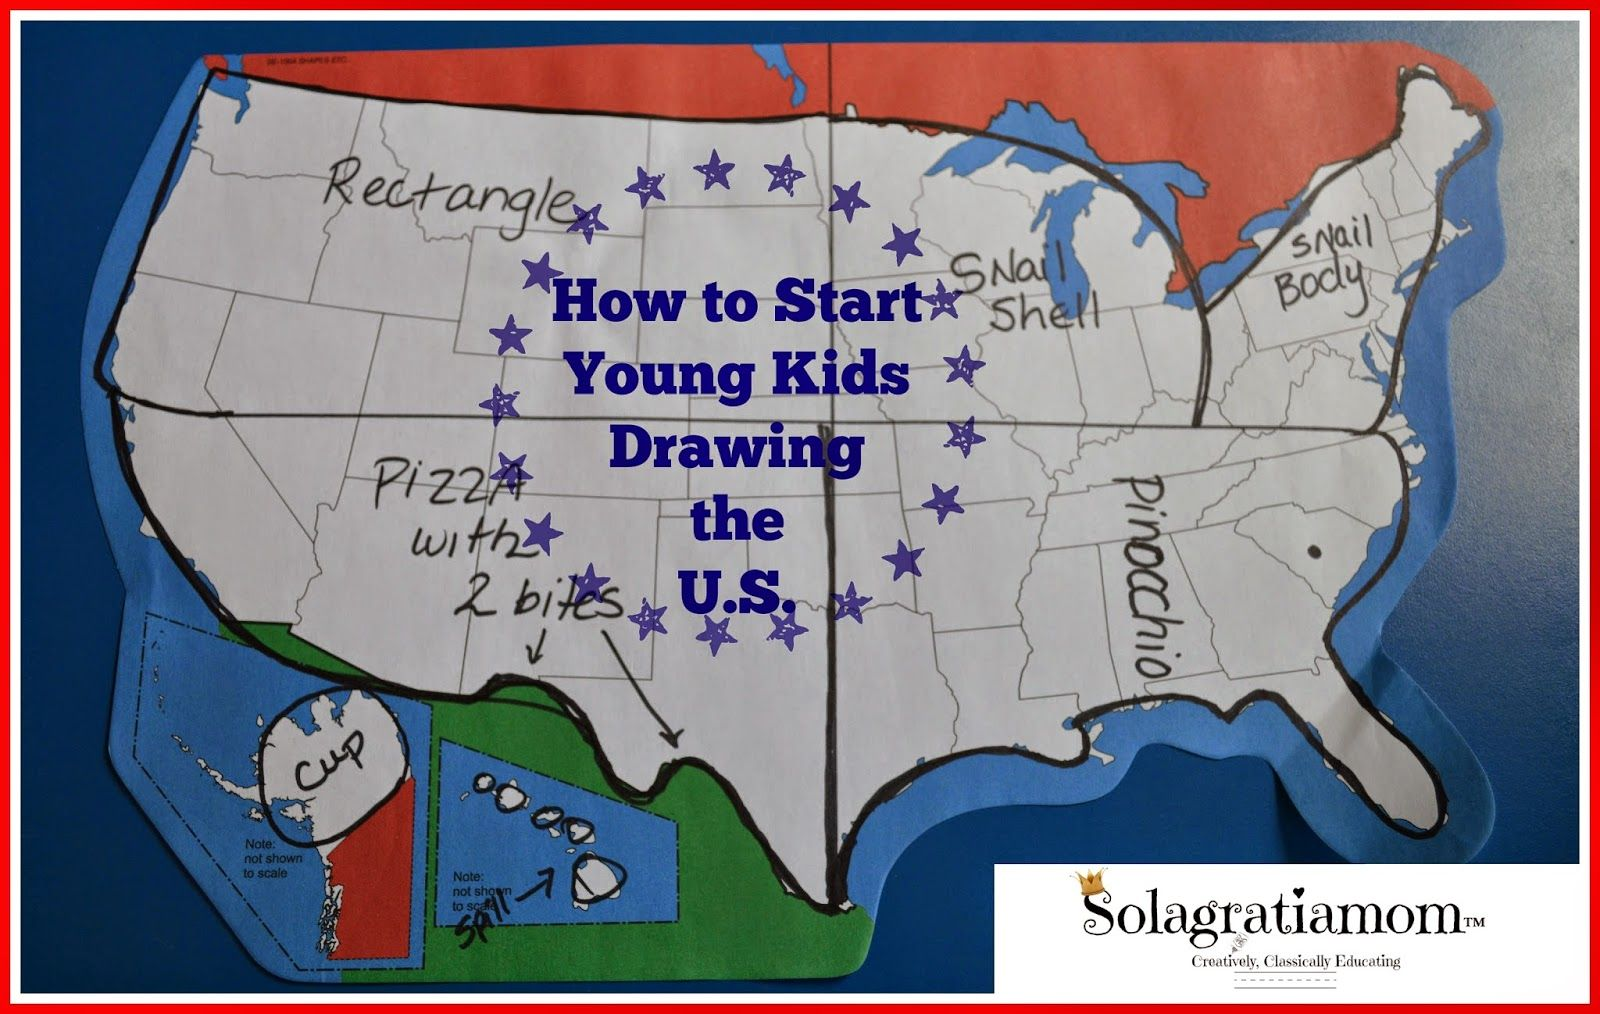 1600x1014 How To Start Young Kids Drawing The U.s. (Sola Gratia Mom